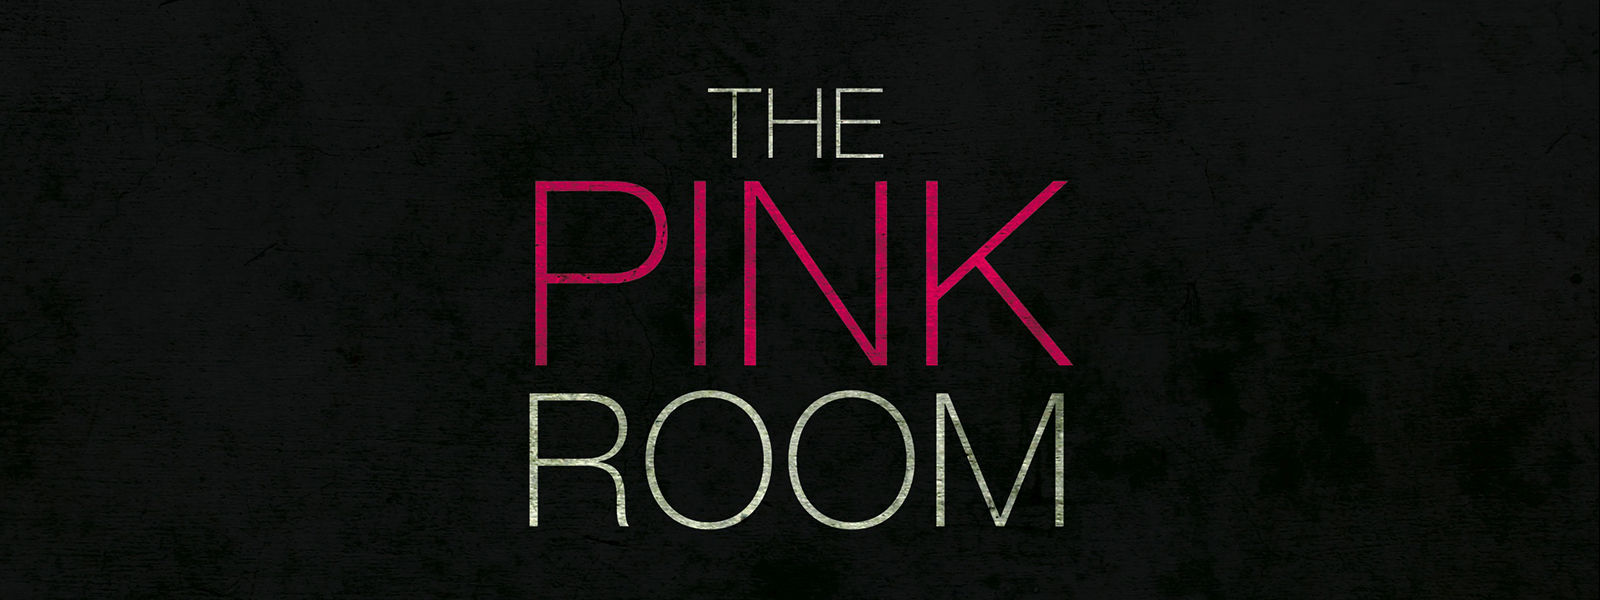 The Pink Room Documentary